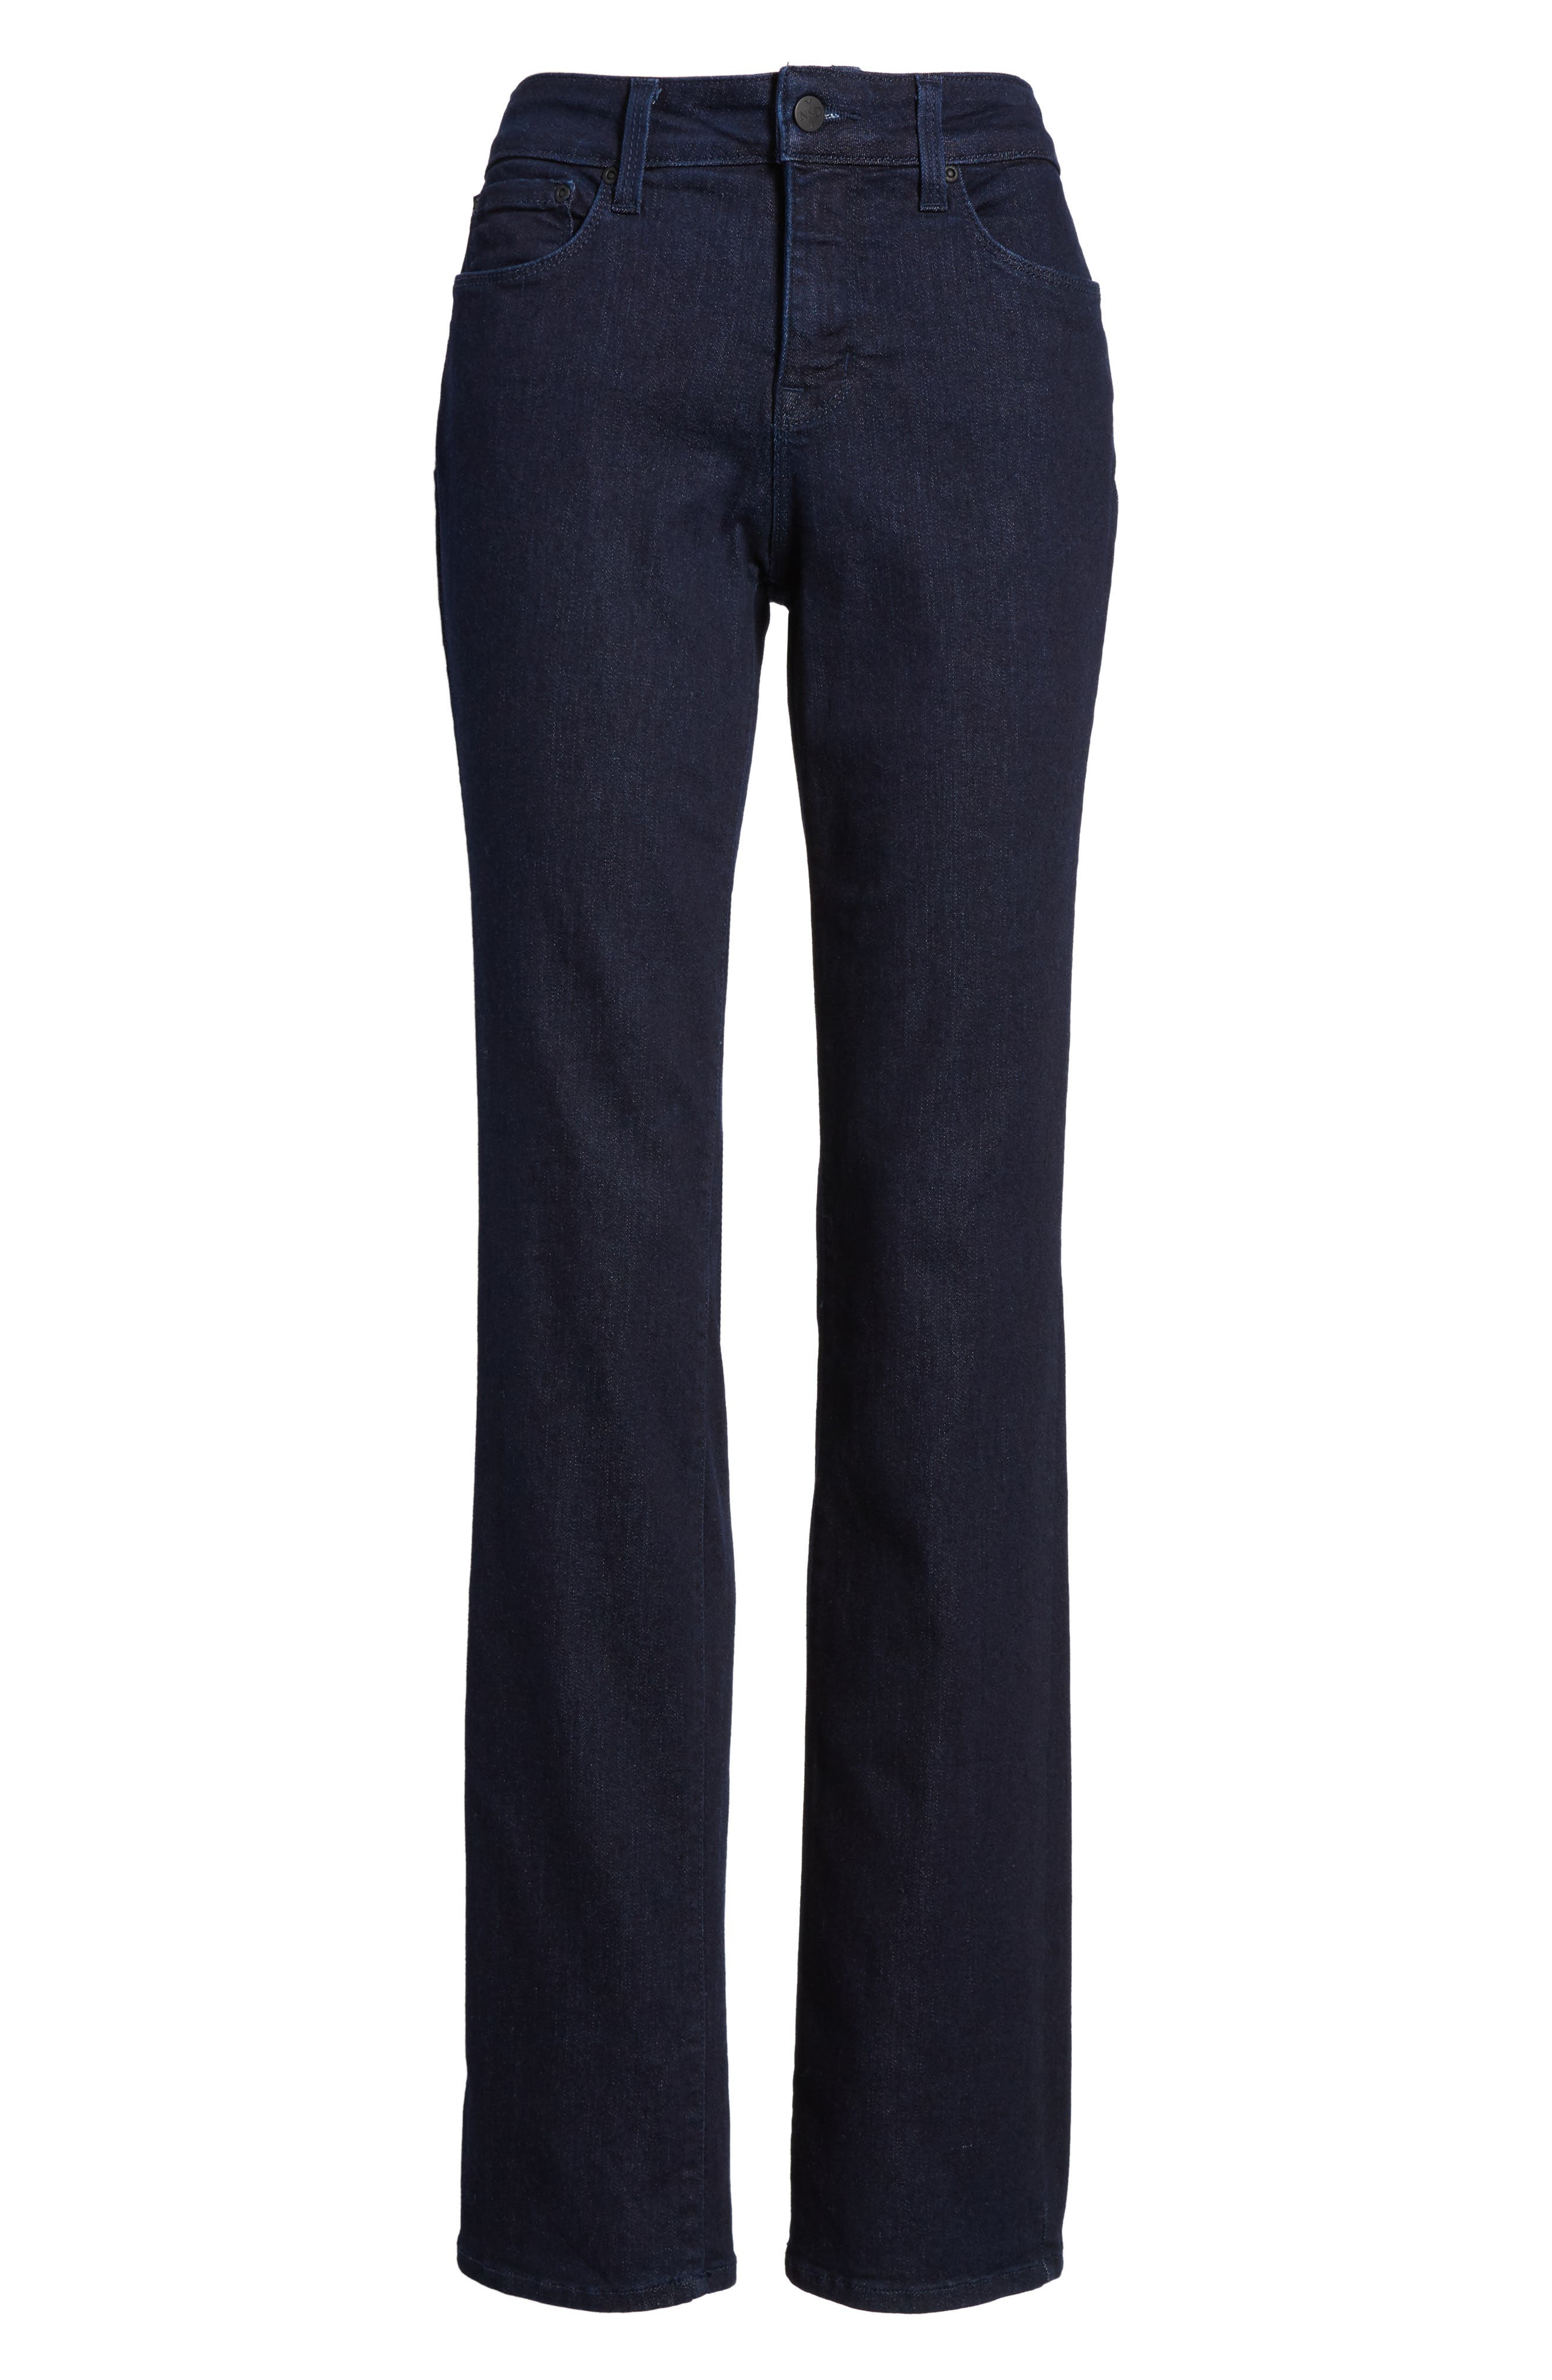 Marilyn Stretch Straight Leg Jeans,                             Alternate thumbnail 6, color,                             Rinse